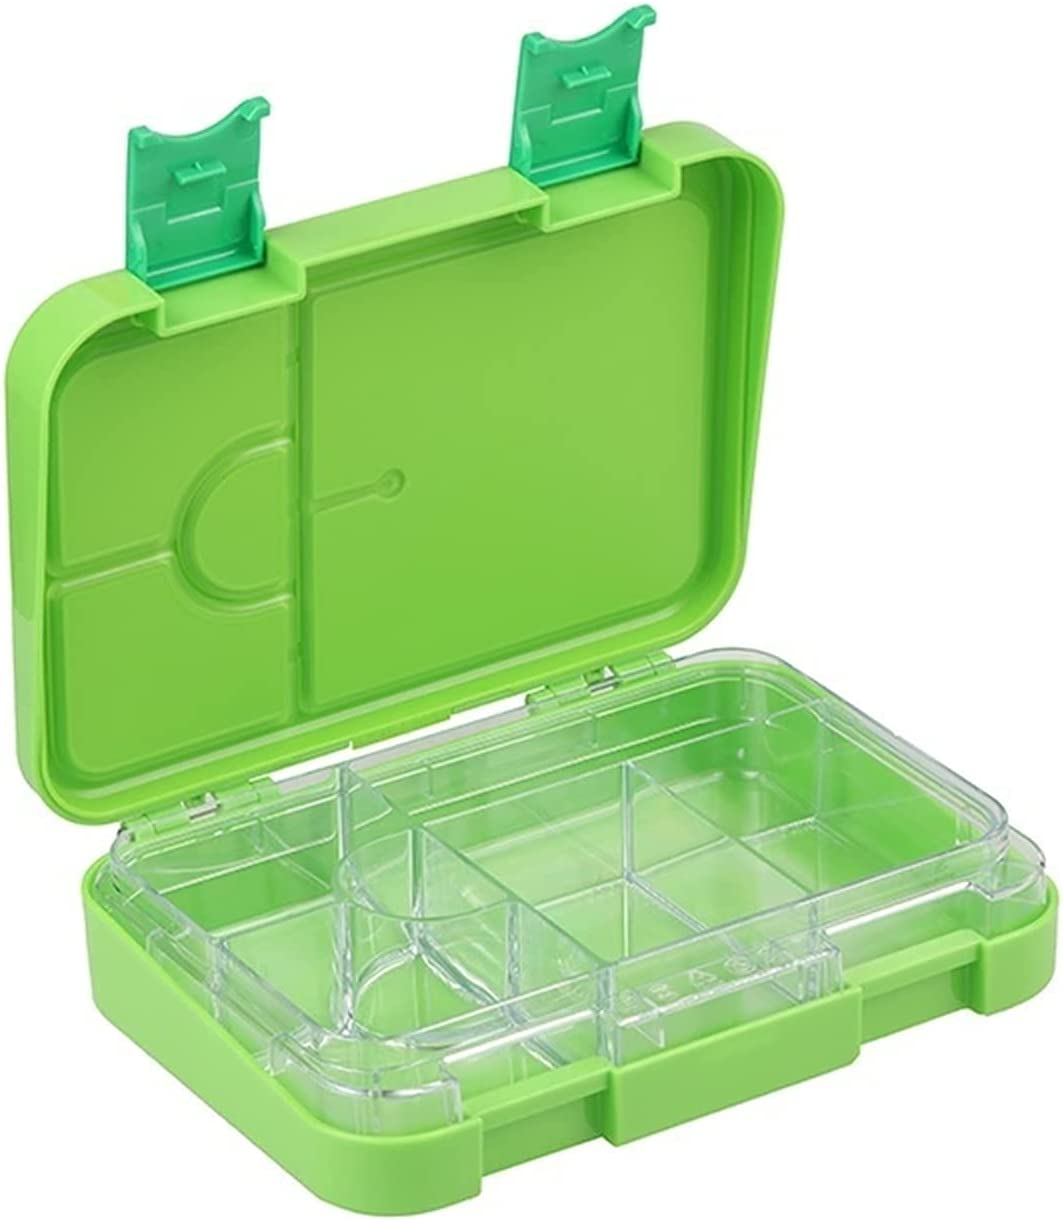 Leak-Proof Louisville-Jefferson County Mall Lunch Bento Department store Box Prep 4-6-Compartment Containers Meal